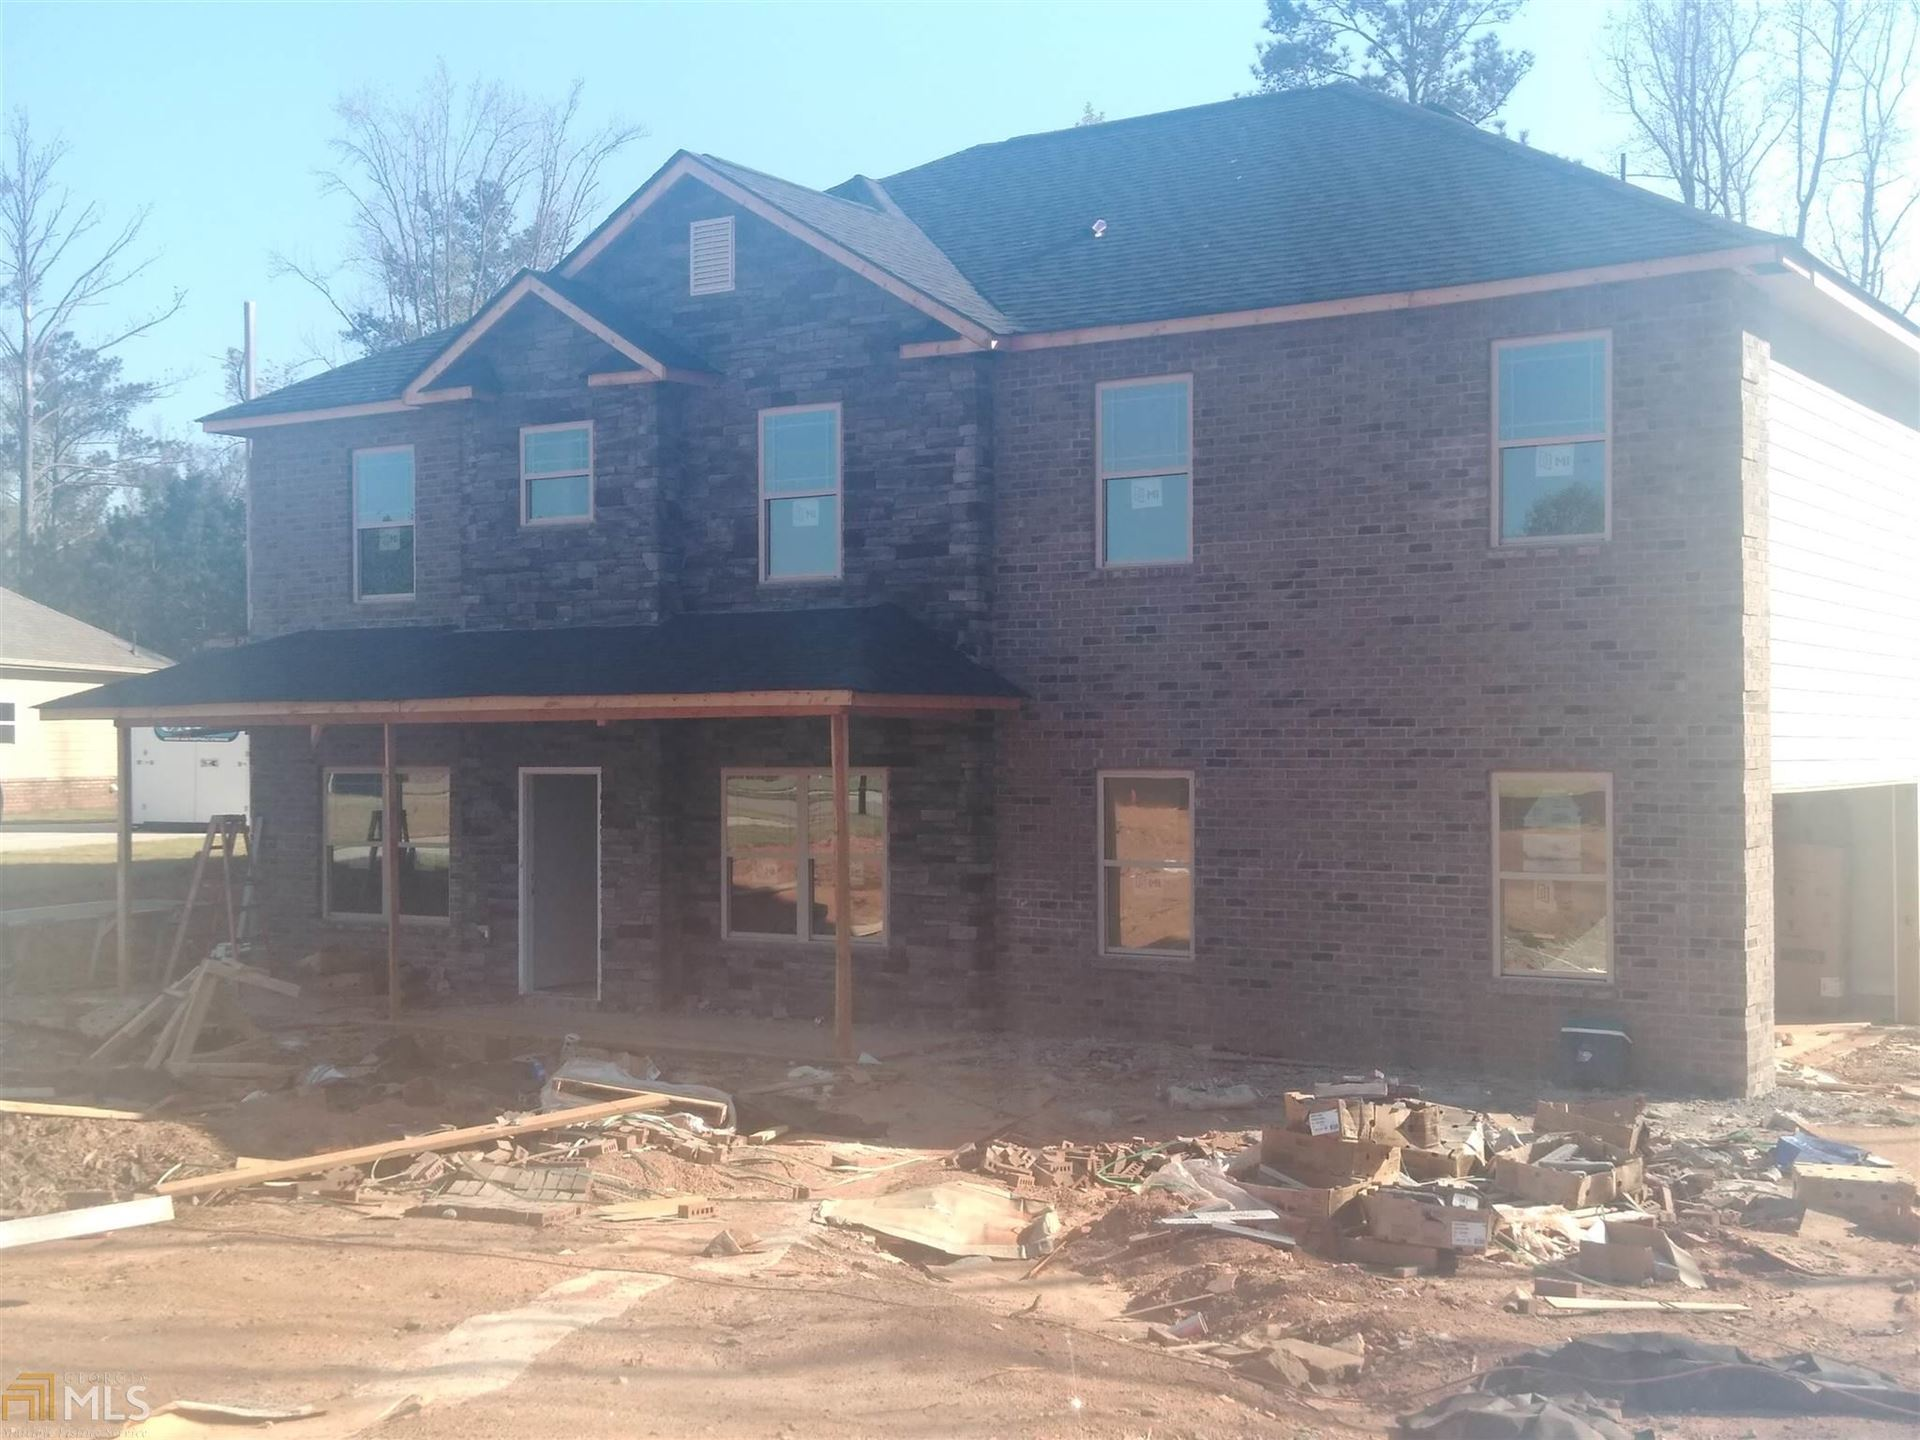 1813 Abbey Rd, Griffin, GA 30223 - MLS#: 8901608